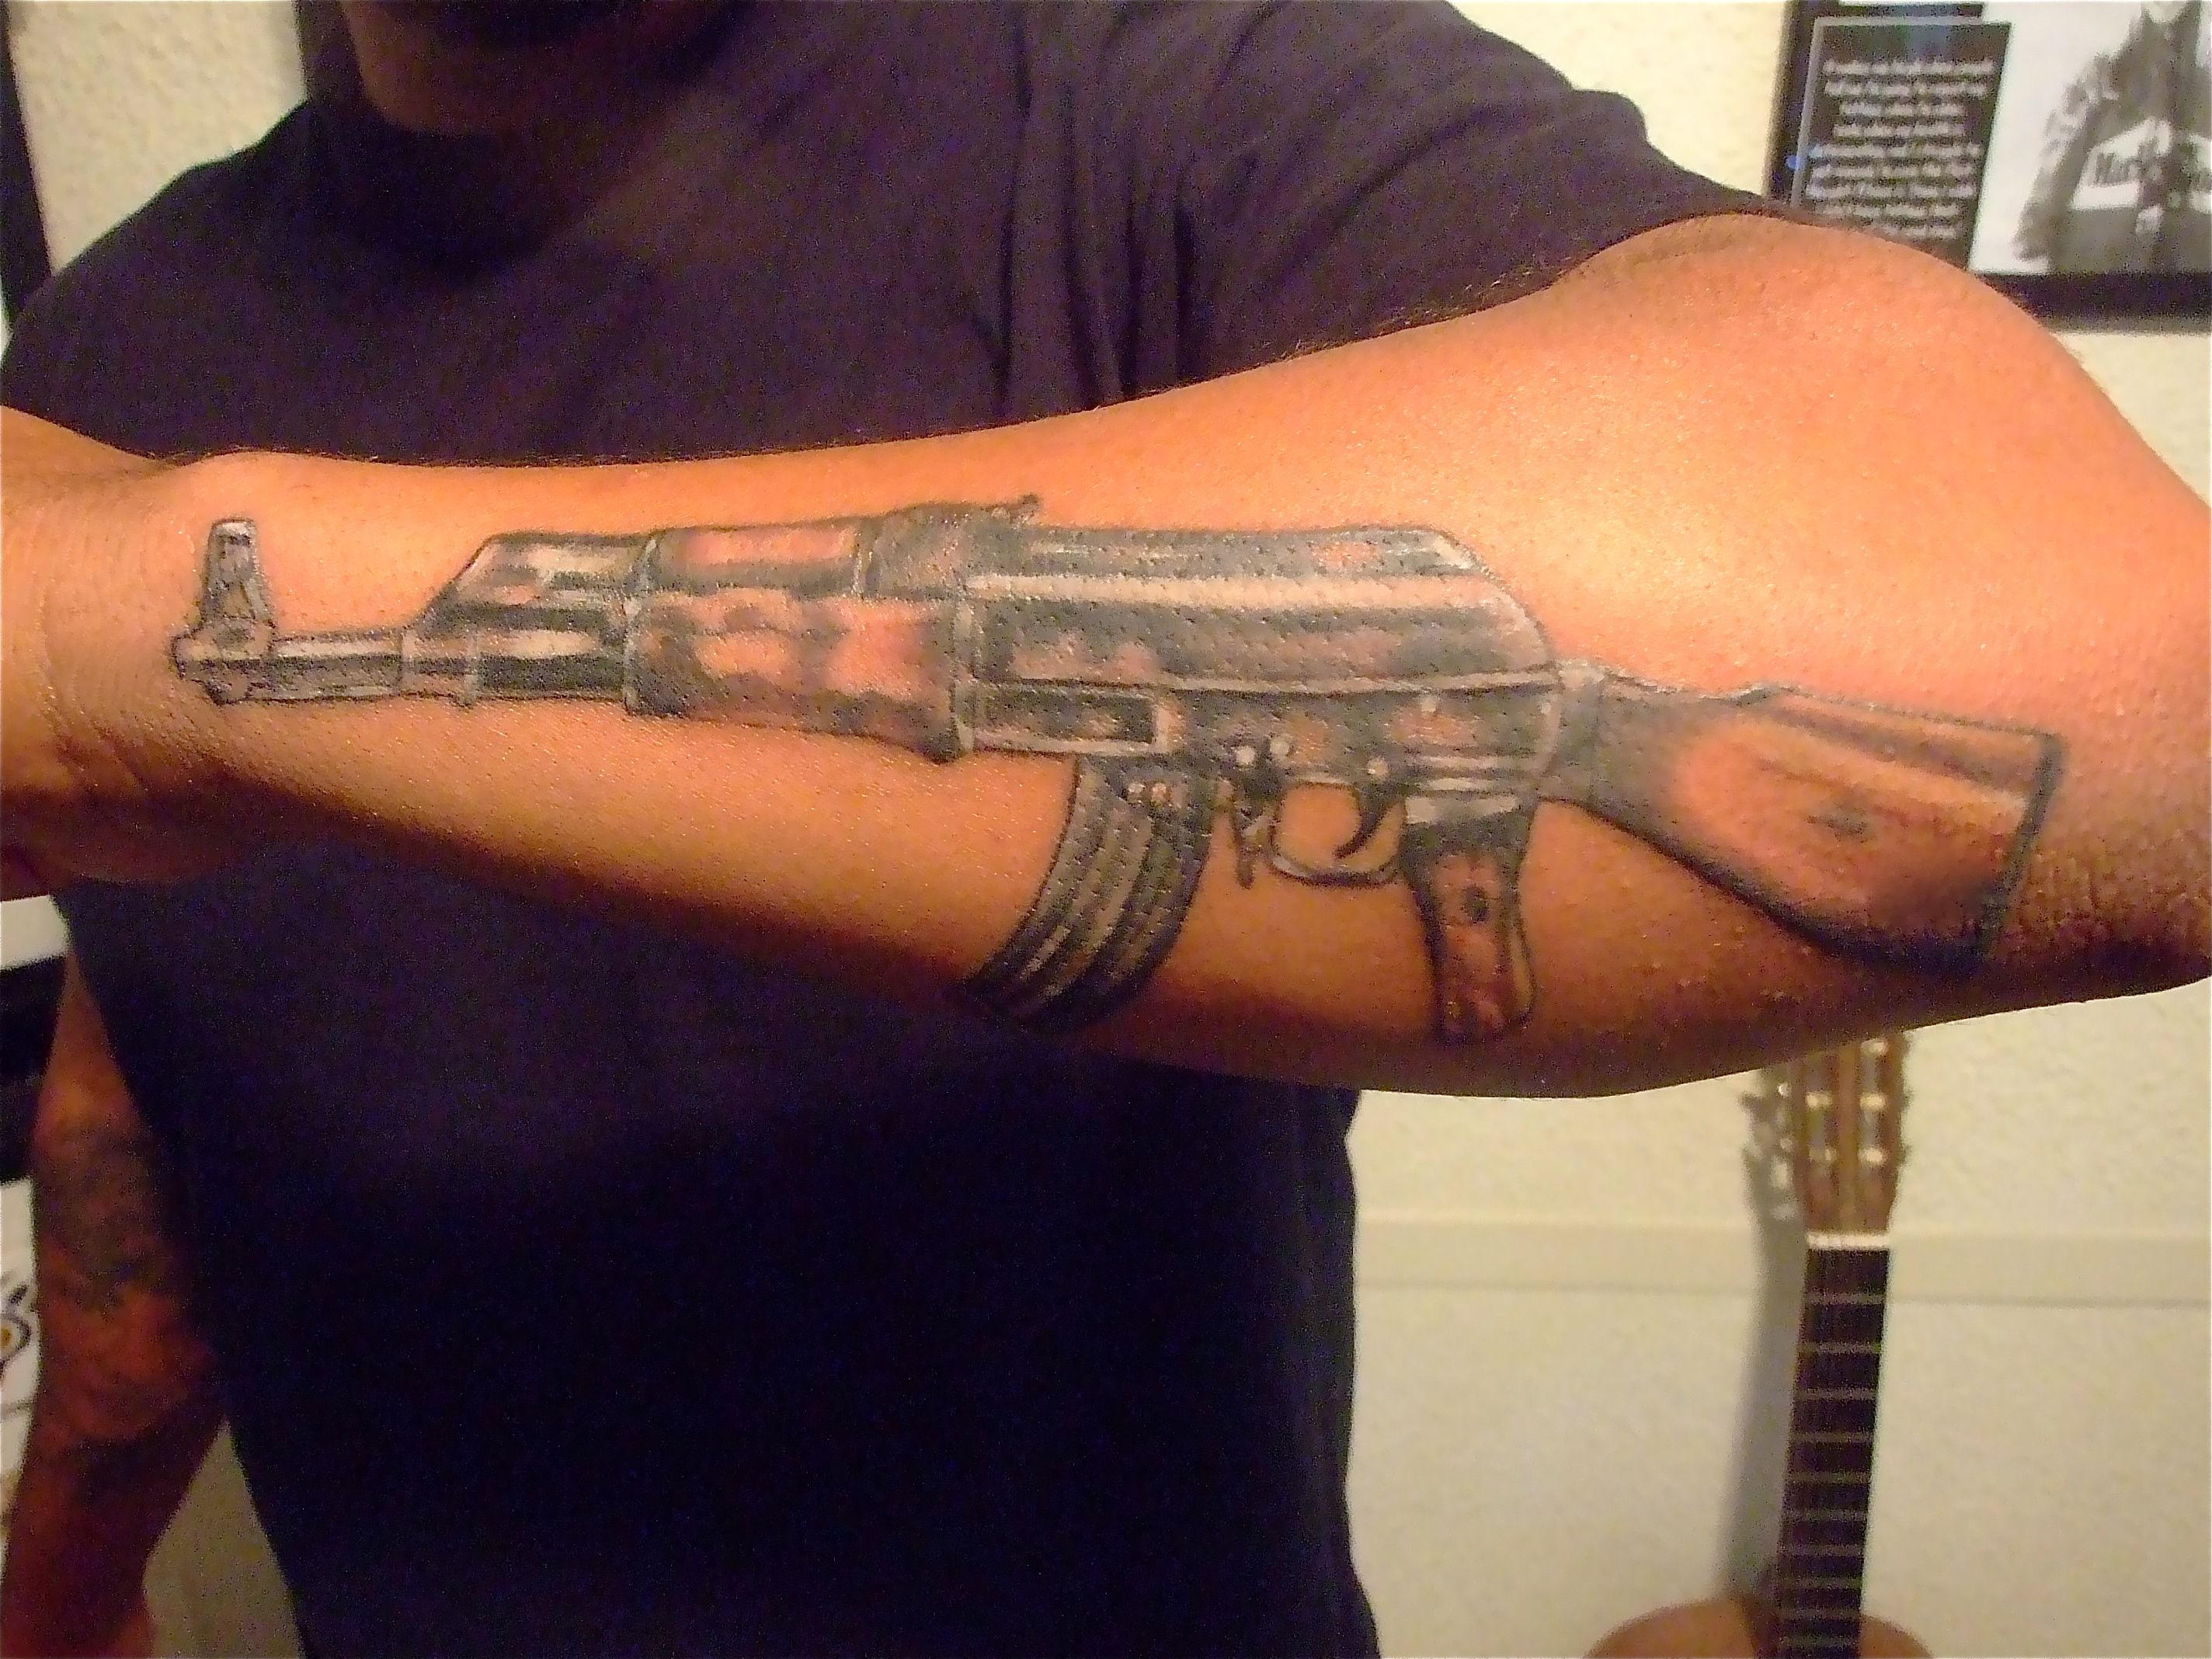 Ak47 Tattoo Forearm Darkside Tattoo Tattoos Ak47 Ideas And Designs